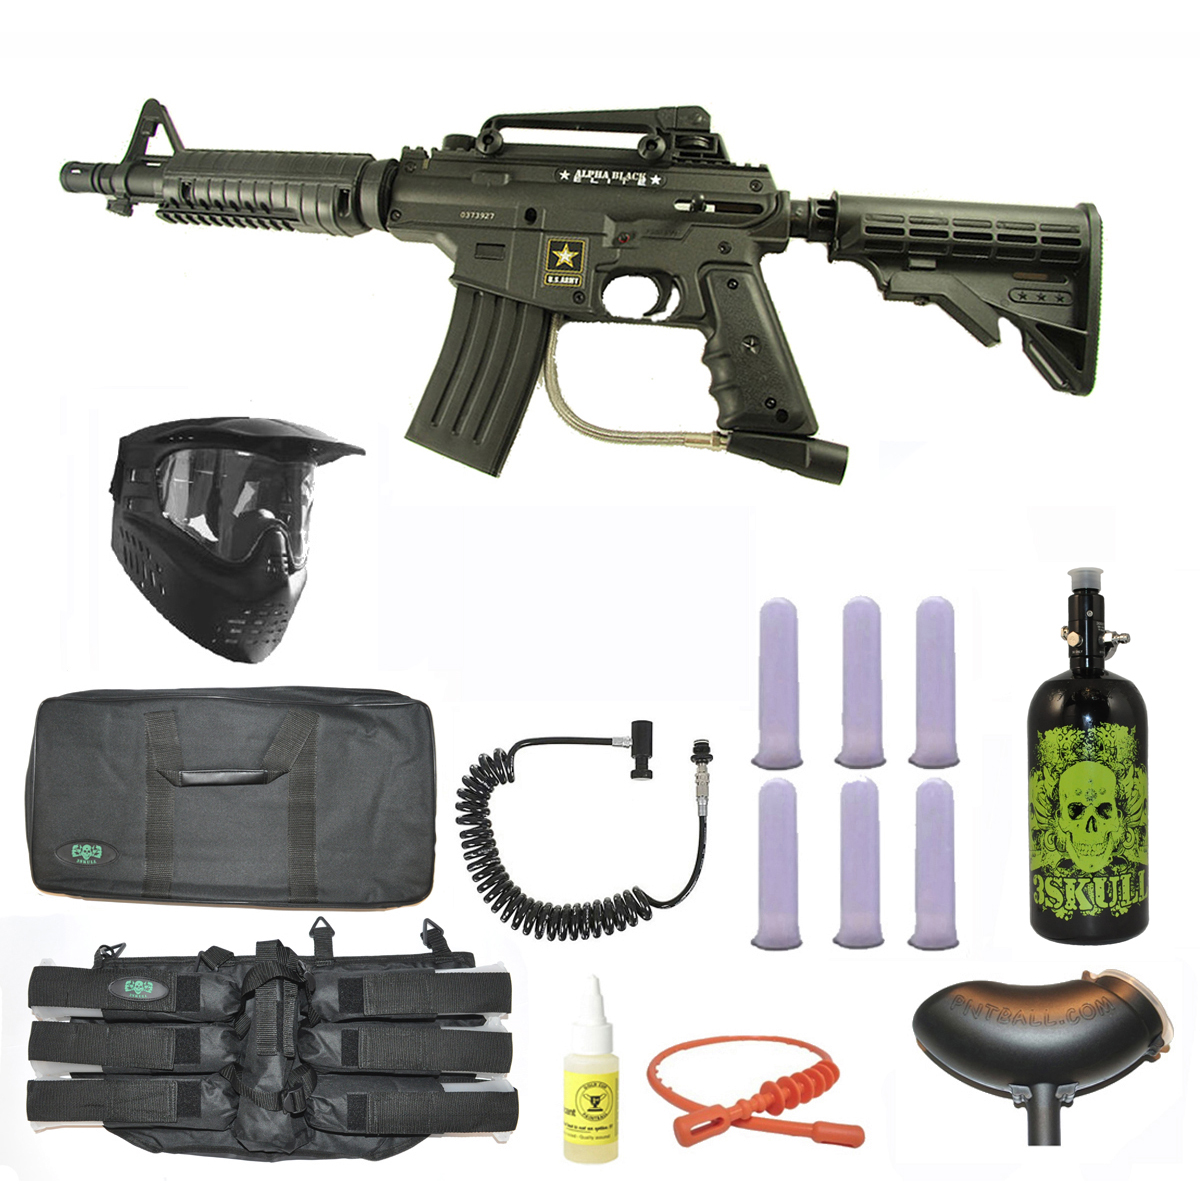 US Army Alpha Black Tactical Paintball Marker Gun 3Skull Nitro Sniper Set